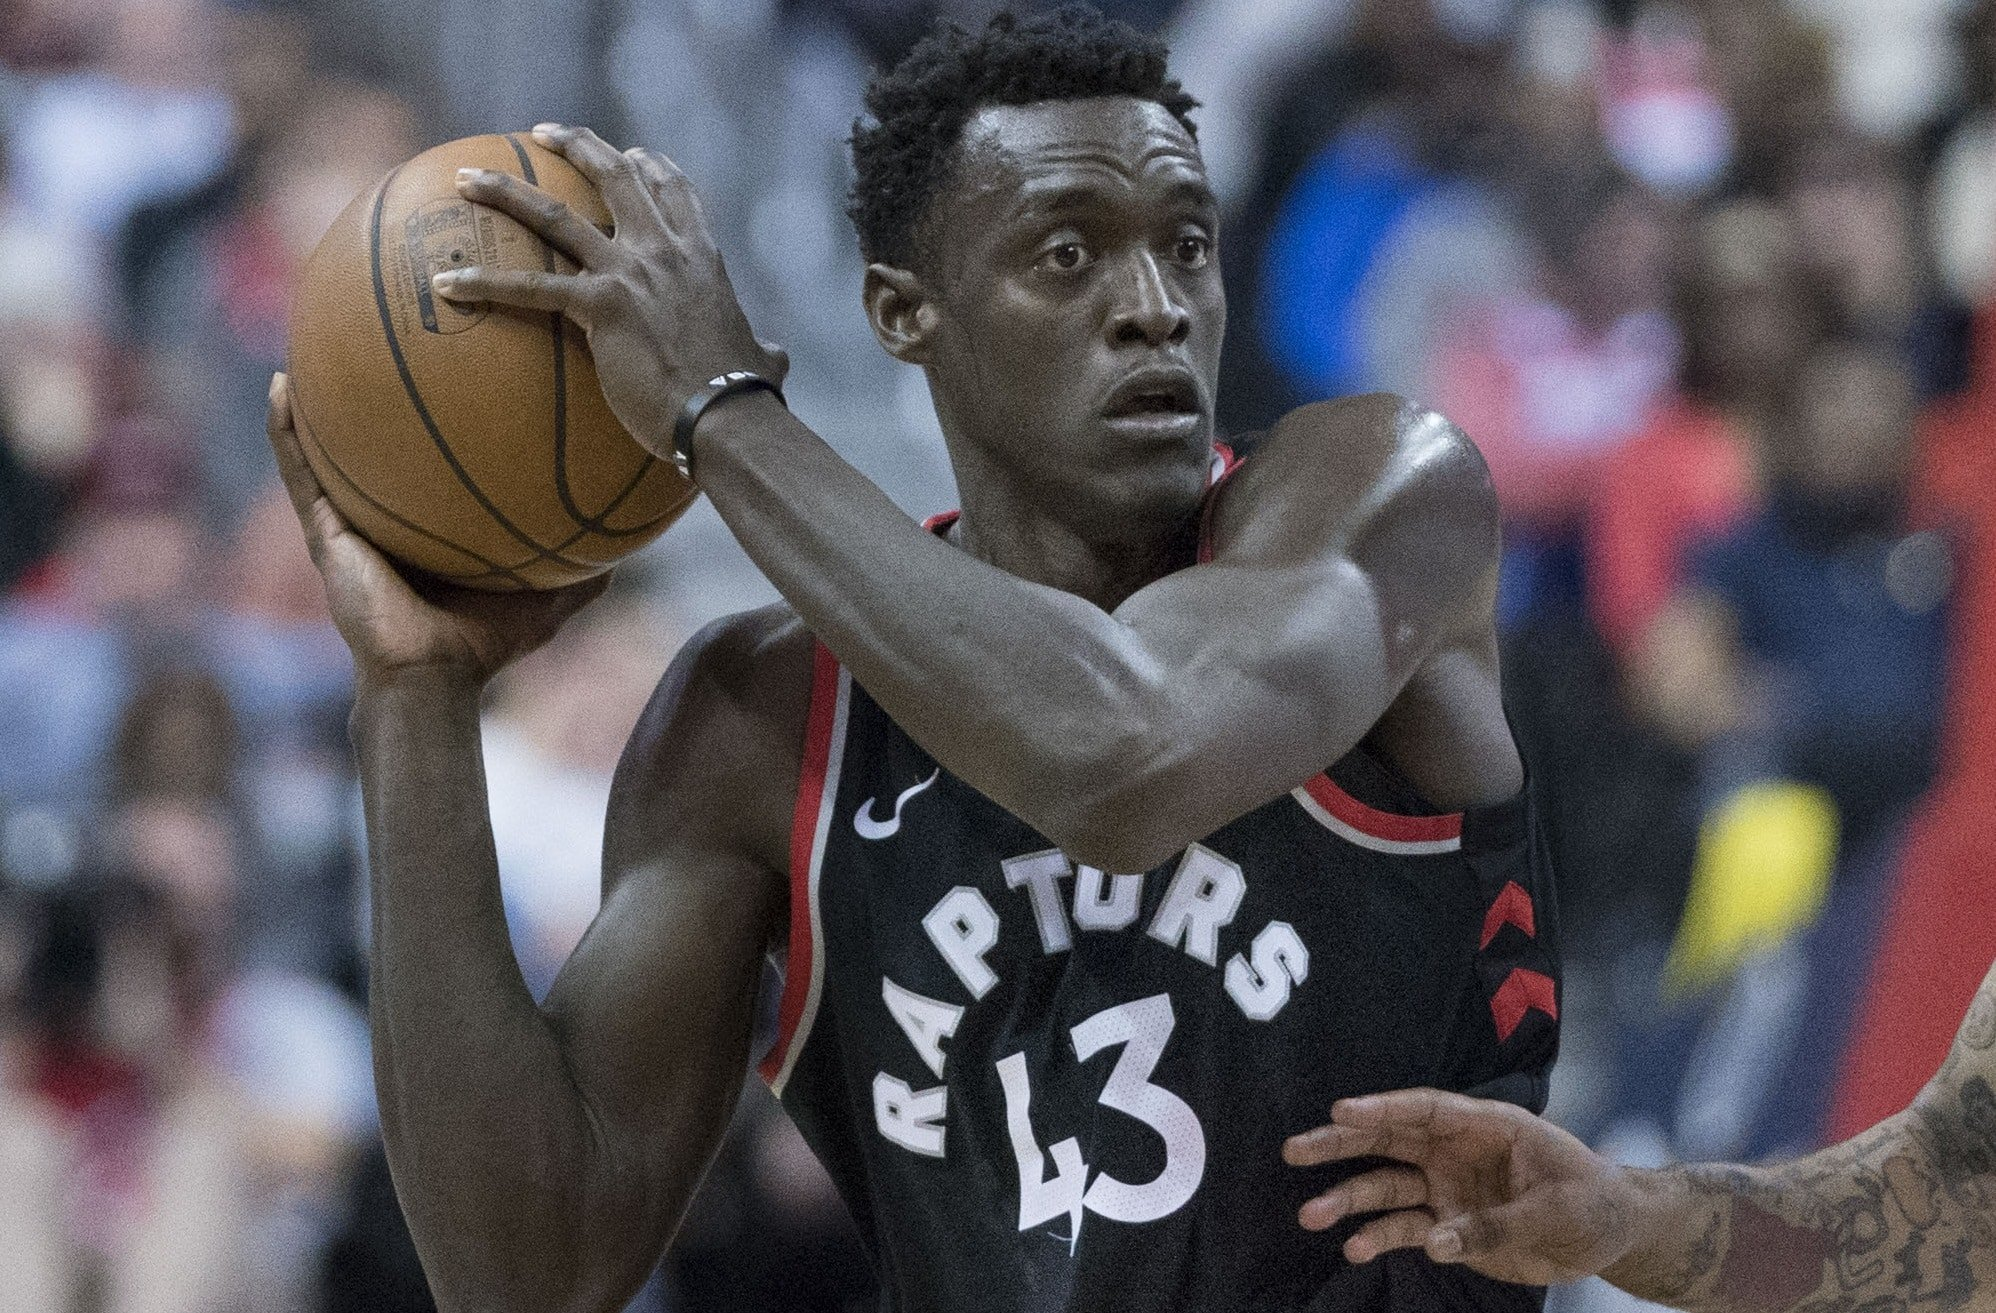 Toronto Raptors Open the Playoffs With a Win Over the Brooklyn Nets, 134-110